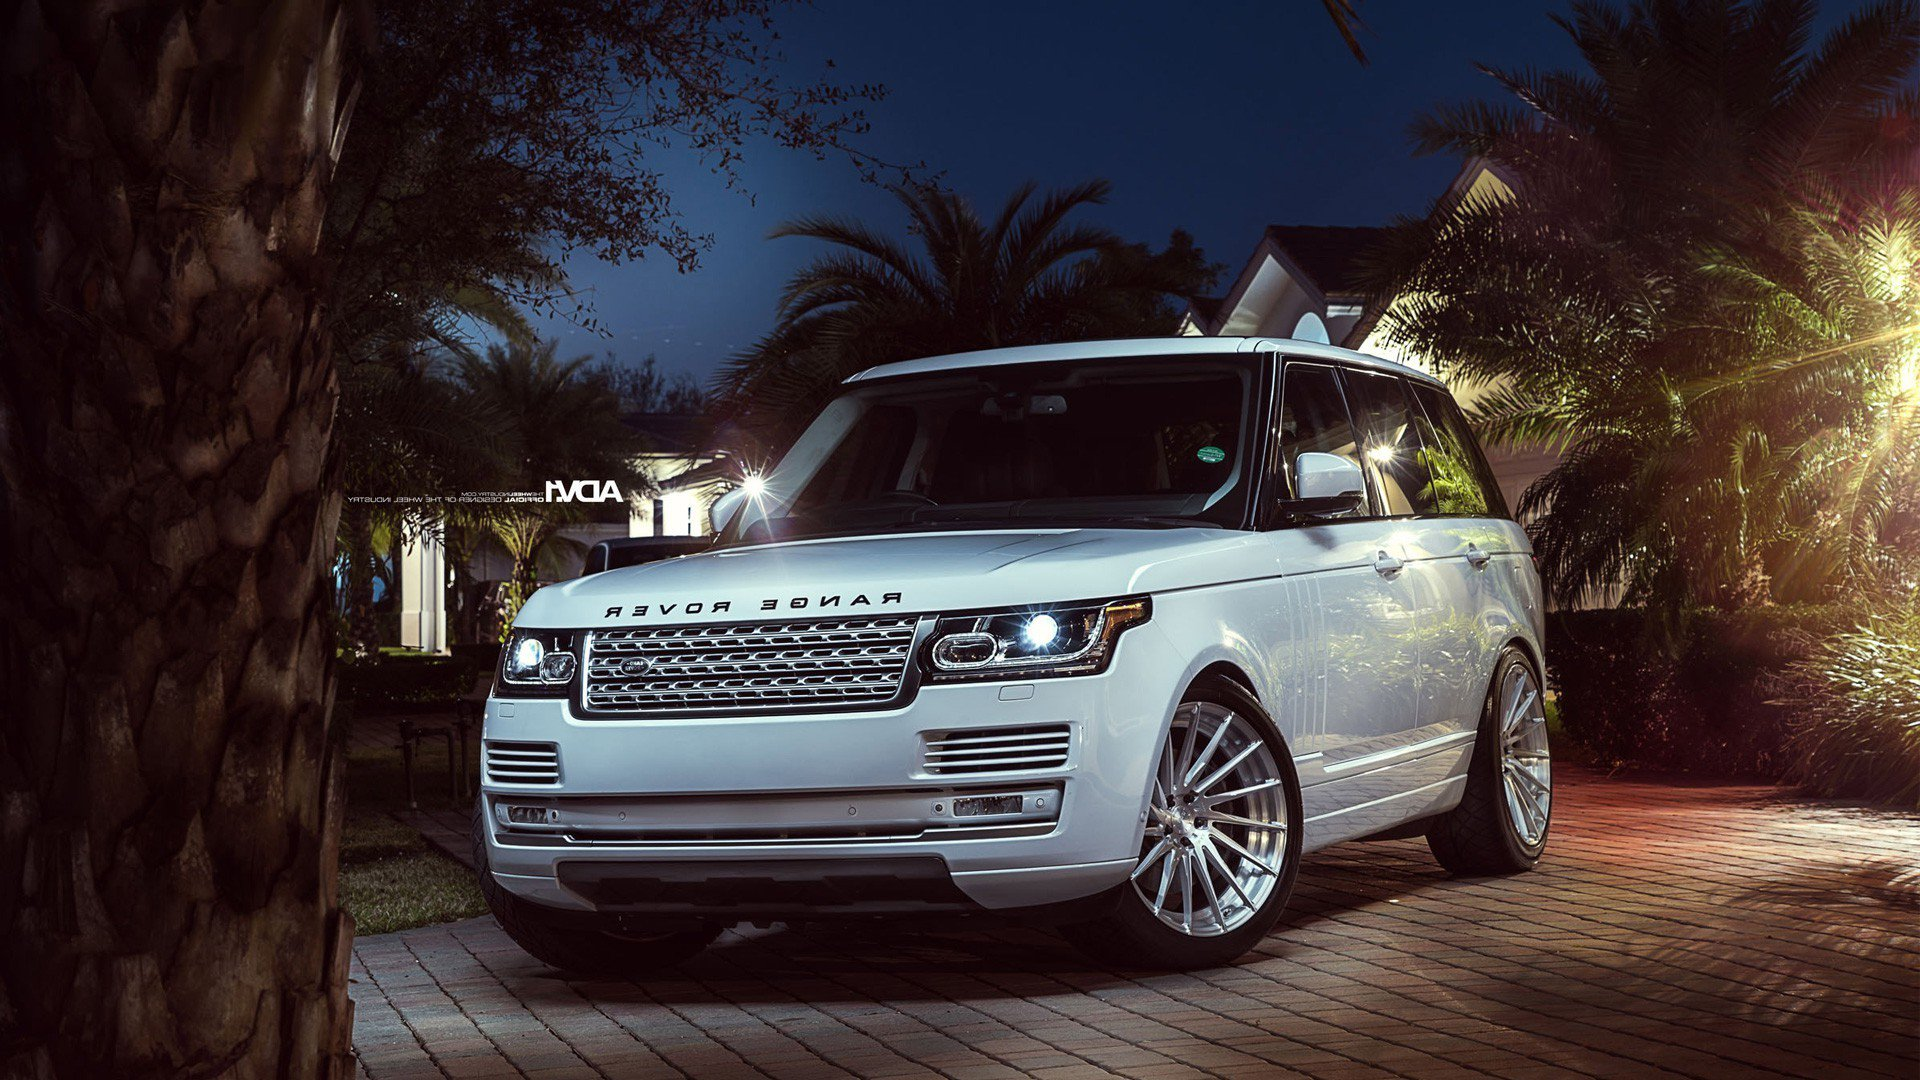 Range Rover, HD Cars, 4k Wallpapers, Images, Backgrounds